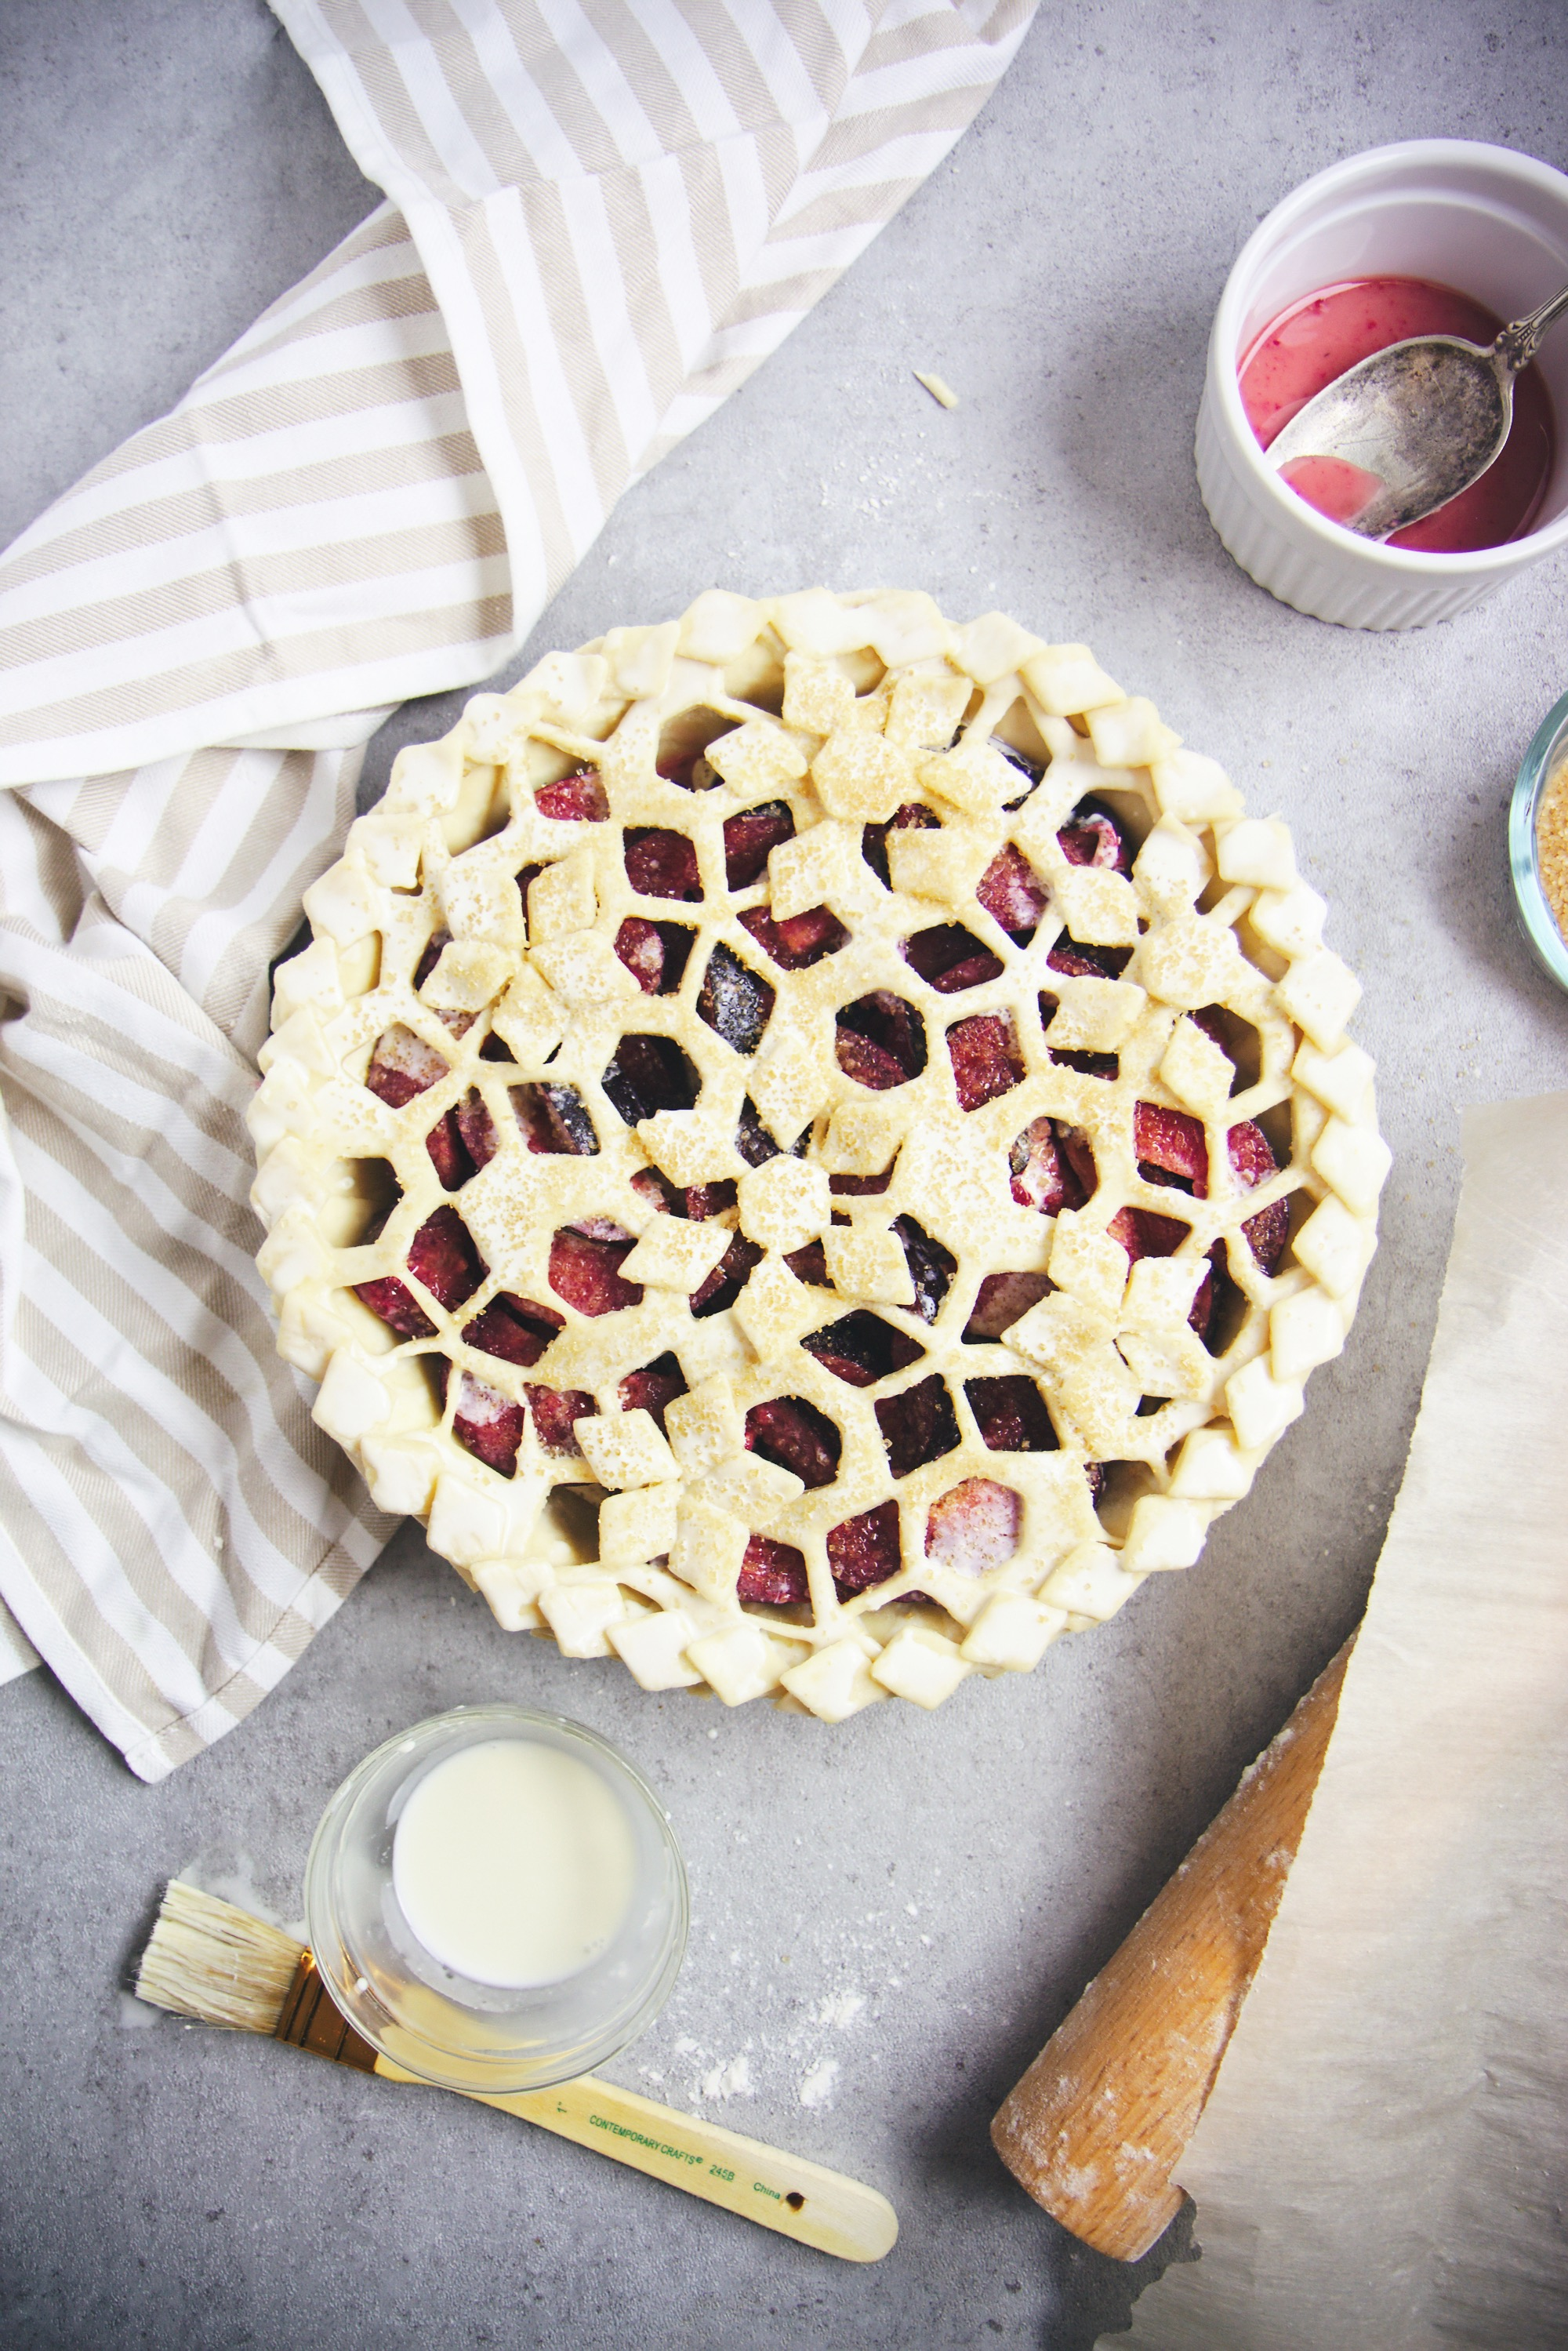 Plum and Frangipane Pie | La Pêche Fraîche